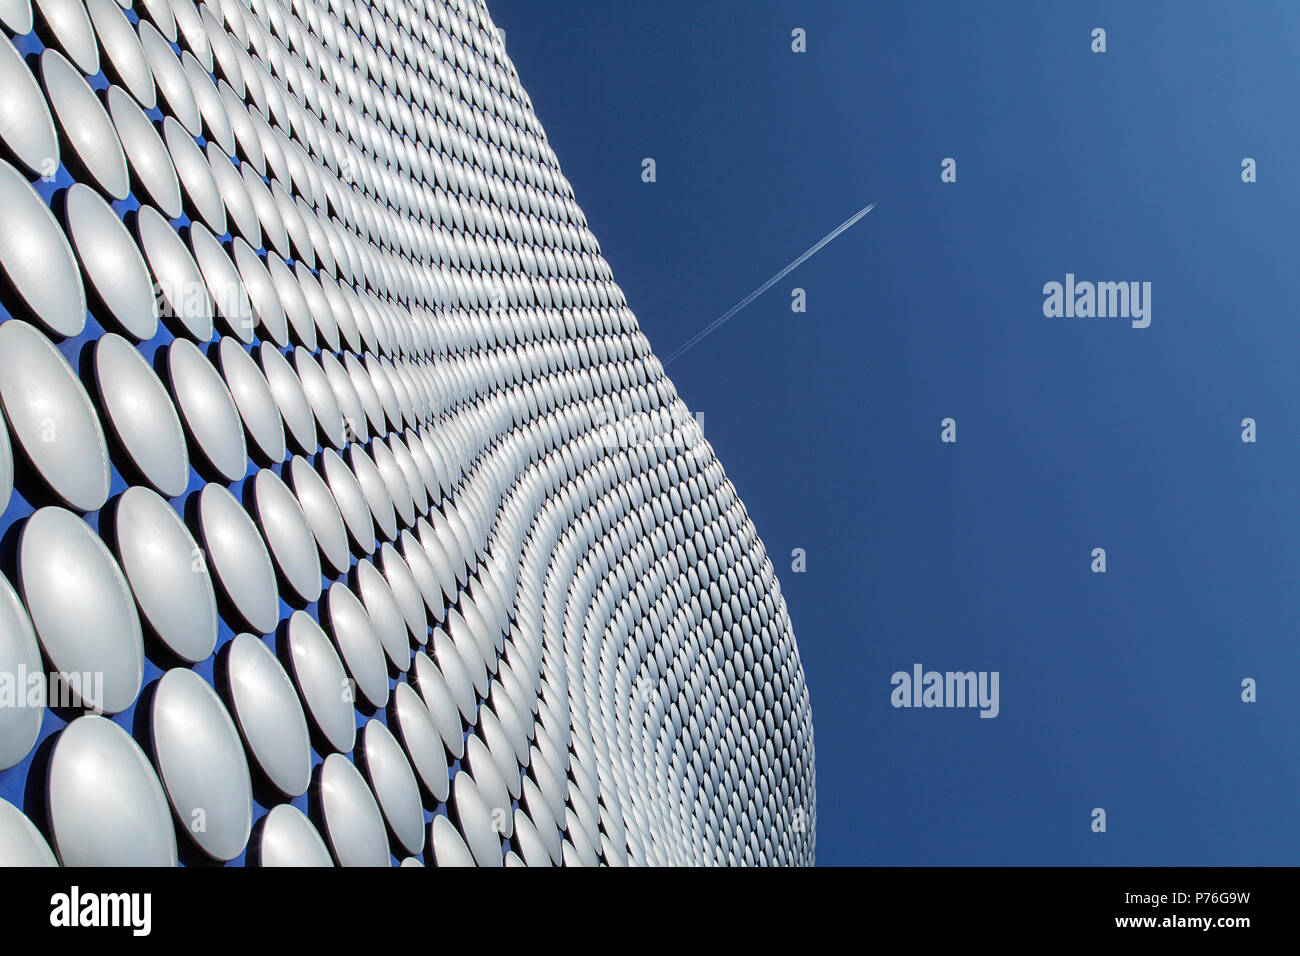 24c2bdba6ad8a Selfridges Store Stock Photos   Selfridges Store Stock Images - Alamy